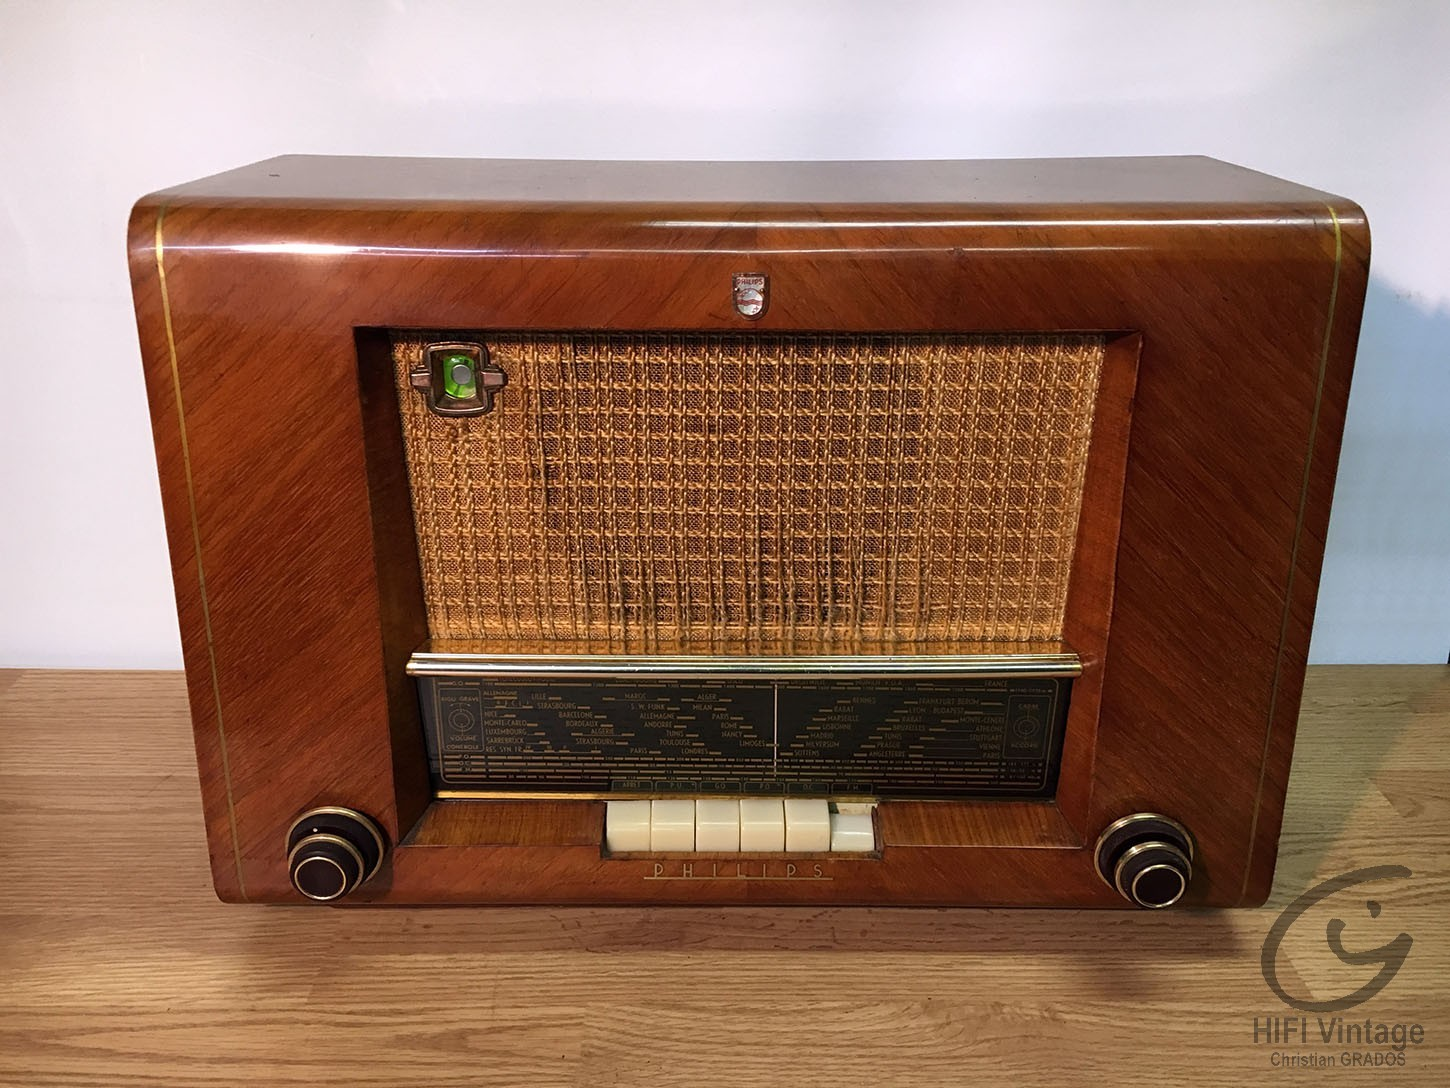 PHILIPS BF-545 Hifi vintage réparations